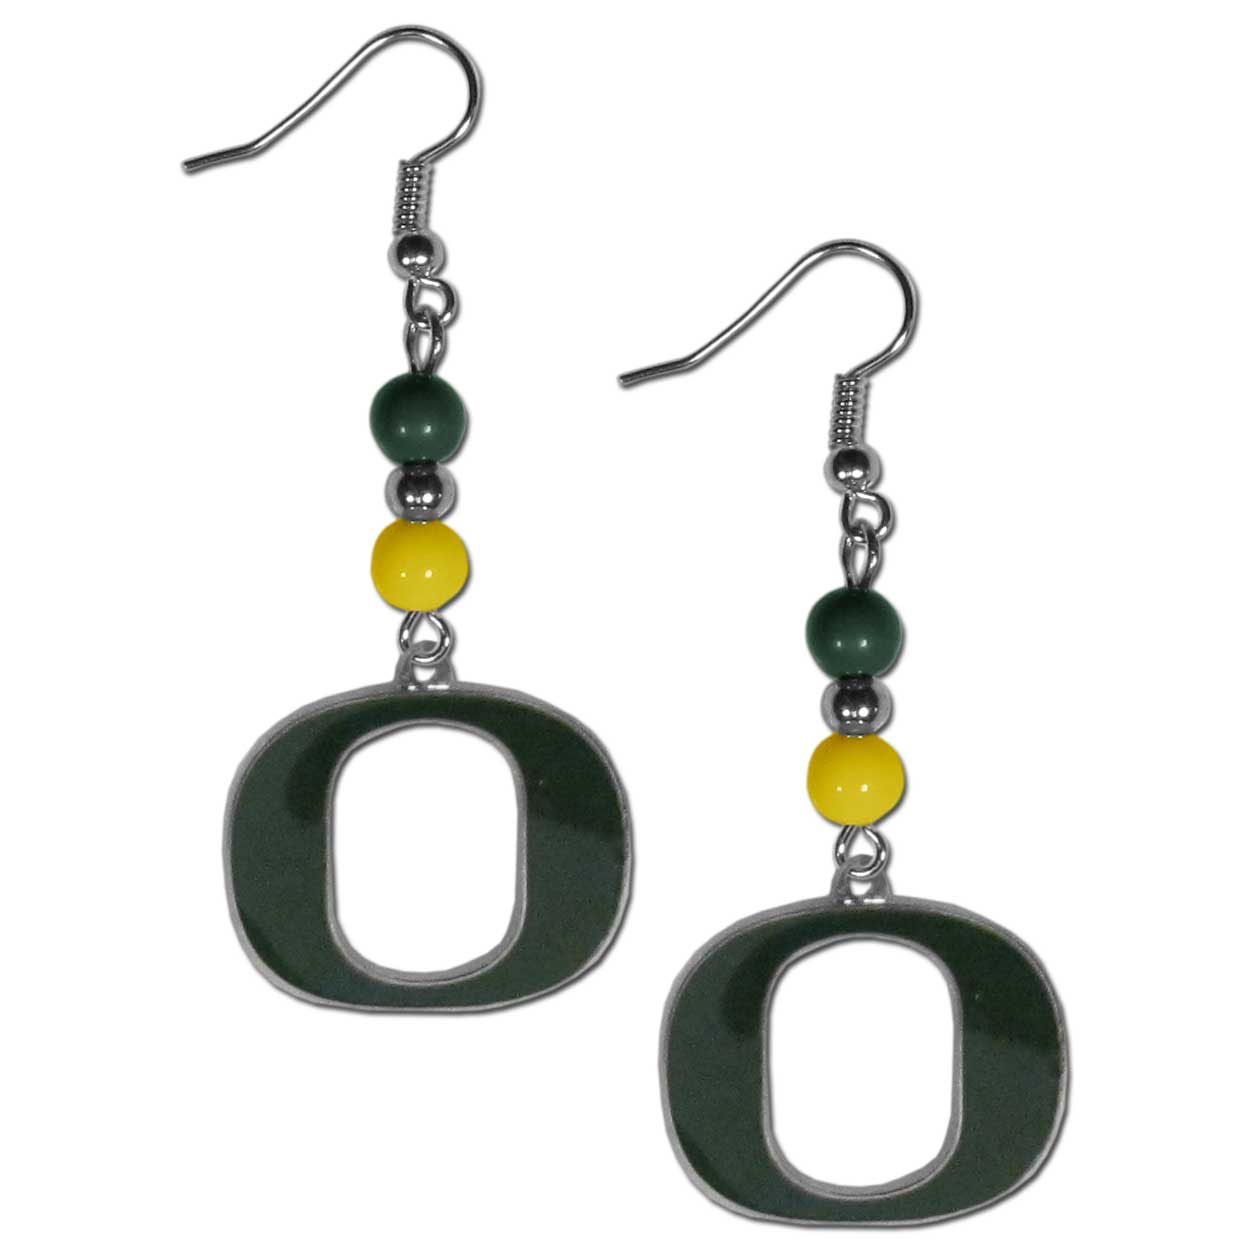 Oregon Ducks Fan Bead Dangle Earrings - Love your team, show it off with our Oregon Ducks bead dangle earrings! These super cute earrings hang approximately 2 inches and features 2 team colored beads and a high polish team charm. A must have for game day!